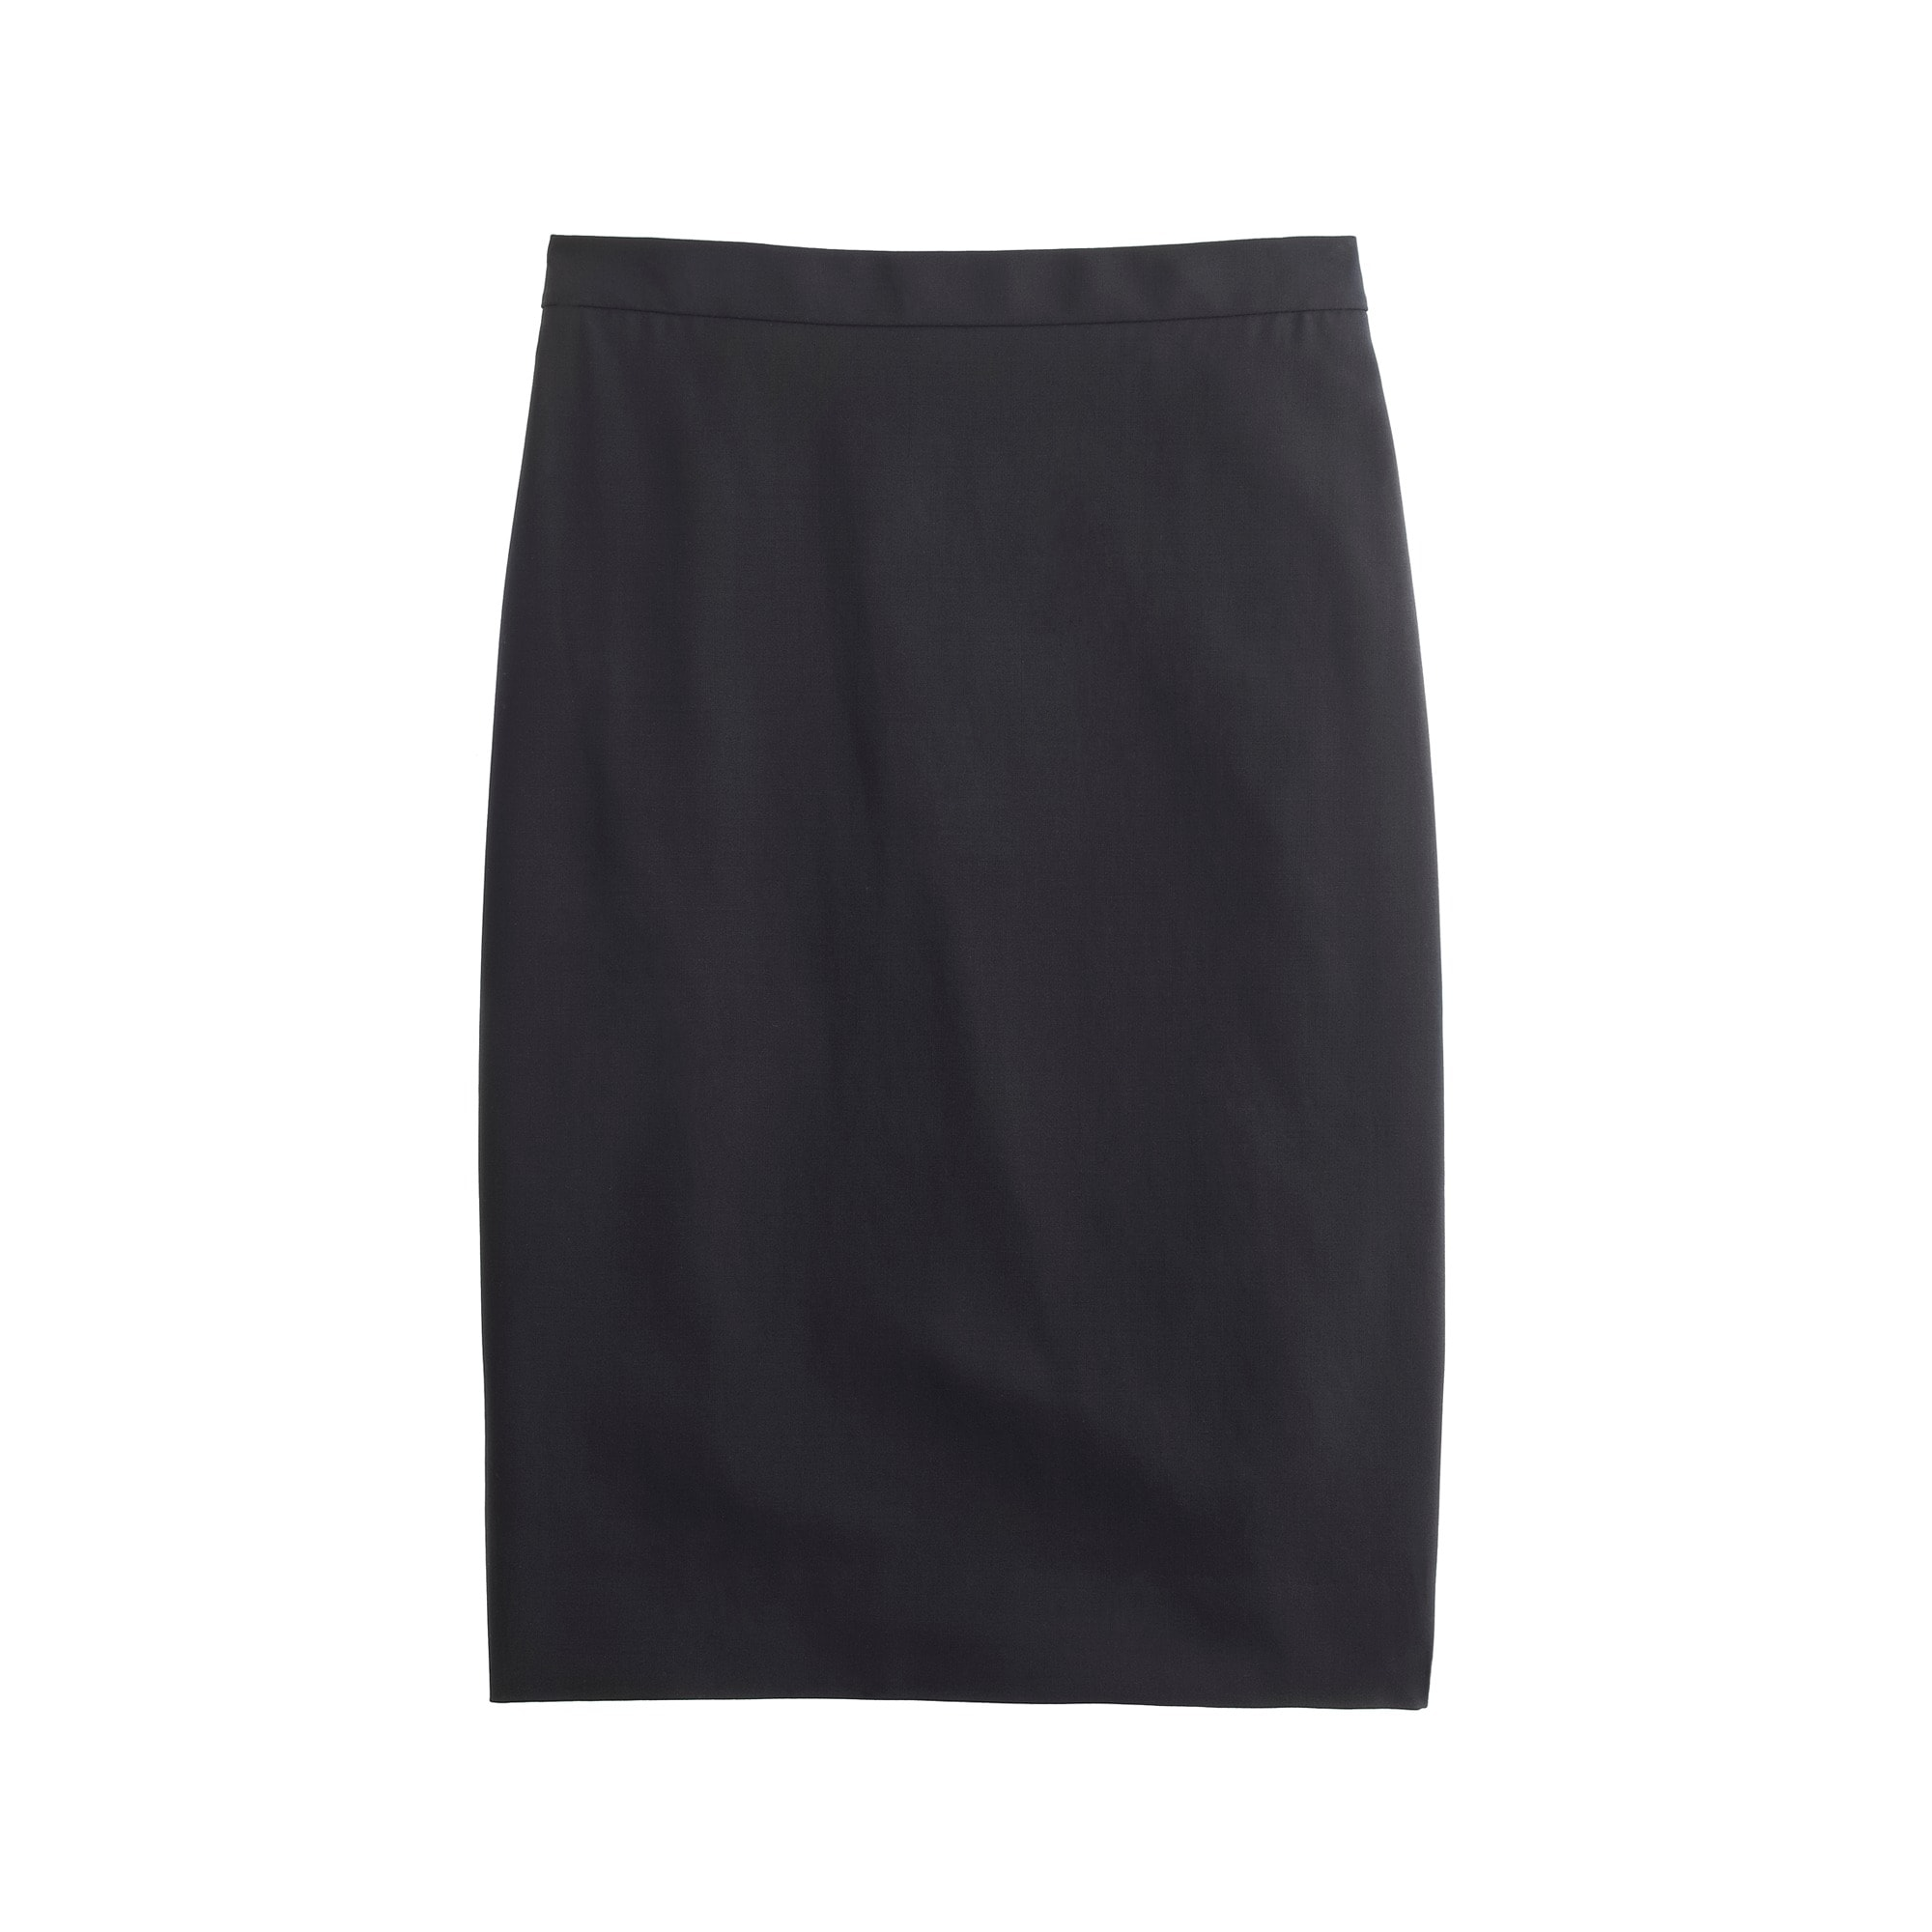 Pencil skirt in Italian two-way stretch wool